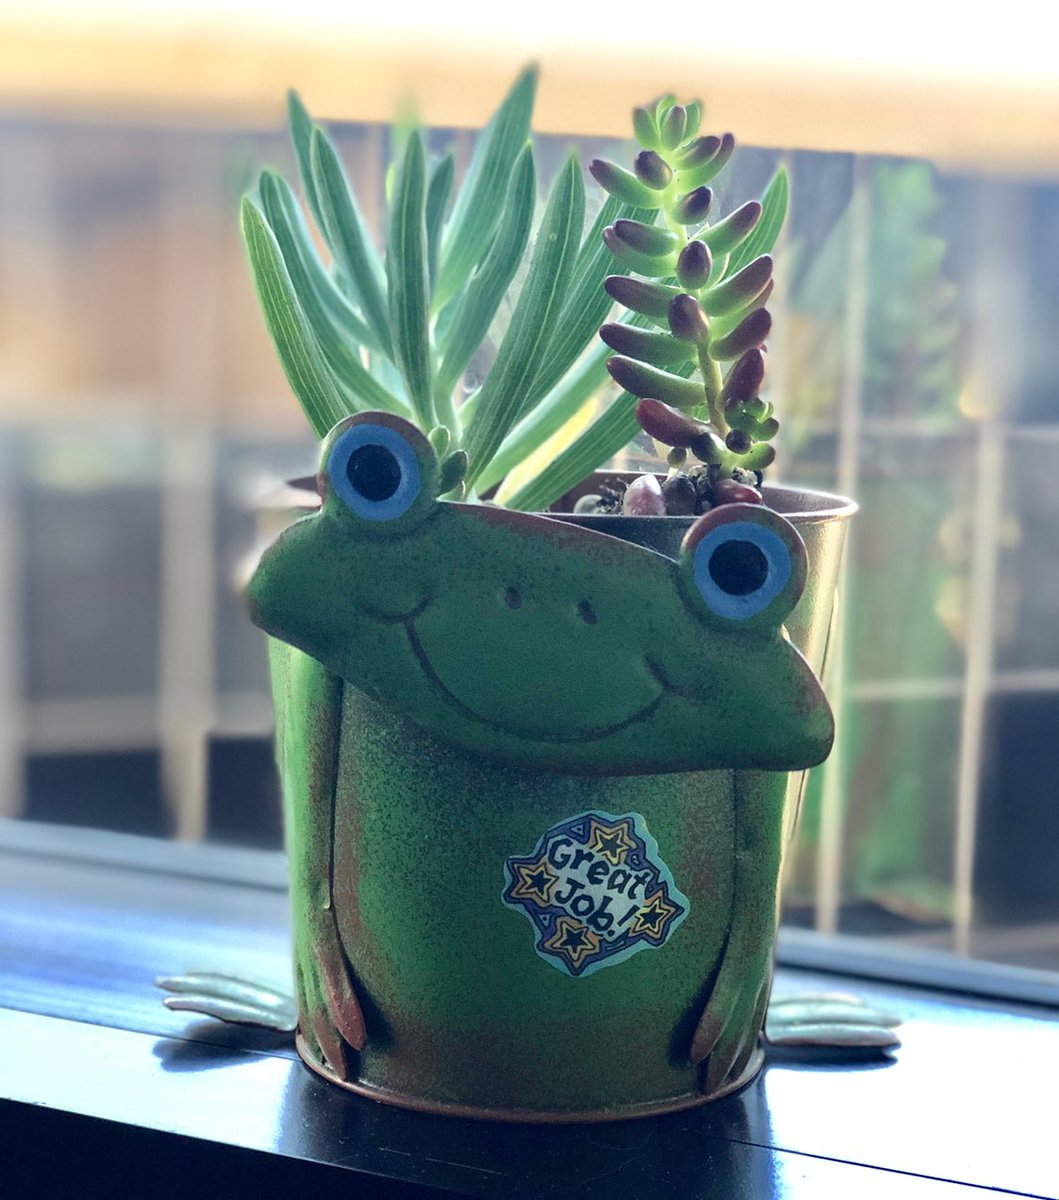 frog pot finally has purpose in life thank you @crapmachine